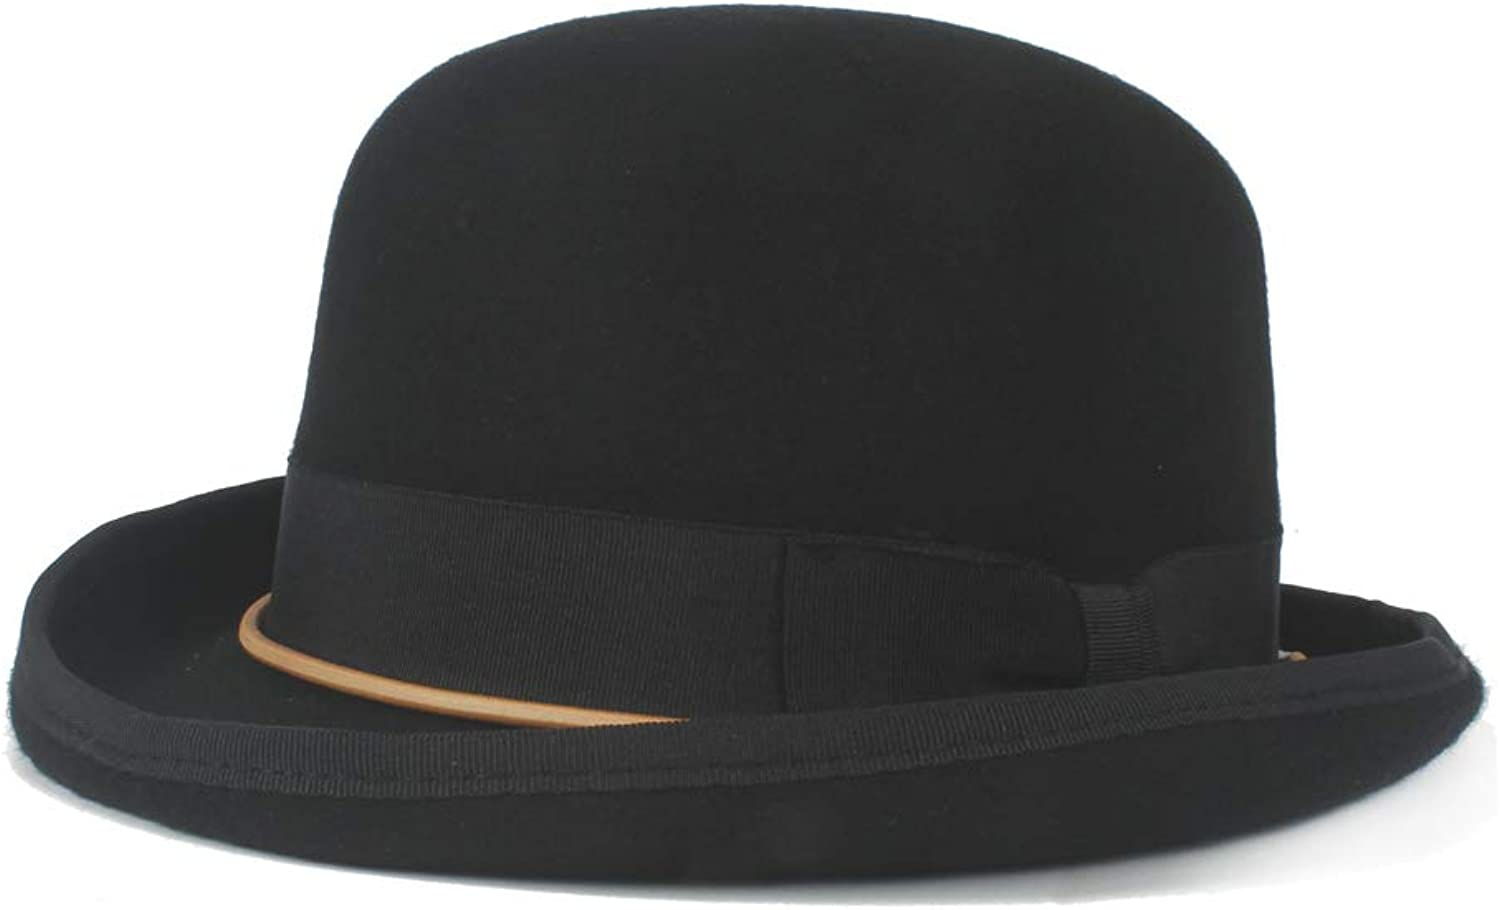 Natural Caps Men and Women Wool Bowler Hat Chain Bow Elegant Dome Hat Luxury Soft Hat Headwear Retro Steampunk Elegant Hats (color   Black, Size   57CM)